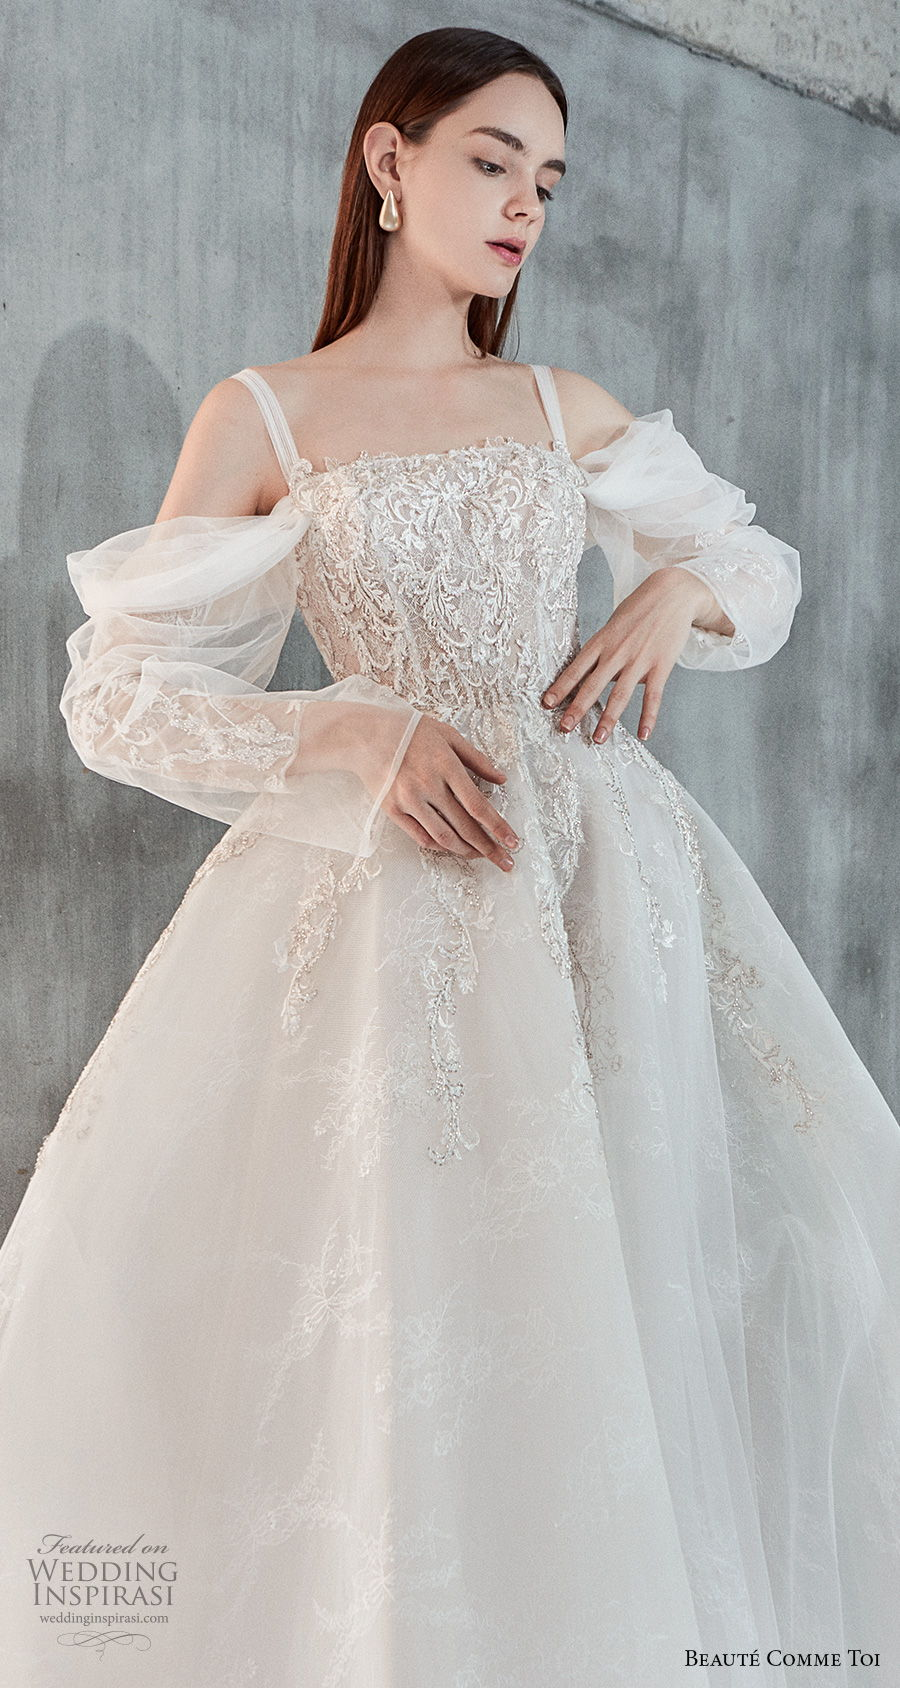 beaute comme toi 2021 bridal long sleeves cold shoulder with strap straight across neckline heavily embellished bodice princess a  line wedding dress mid back chapel train (eloise) zv